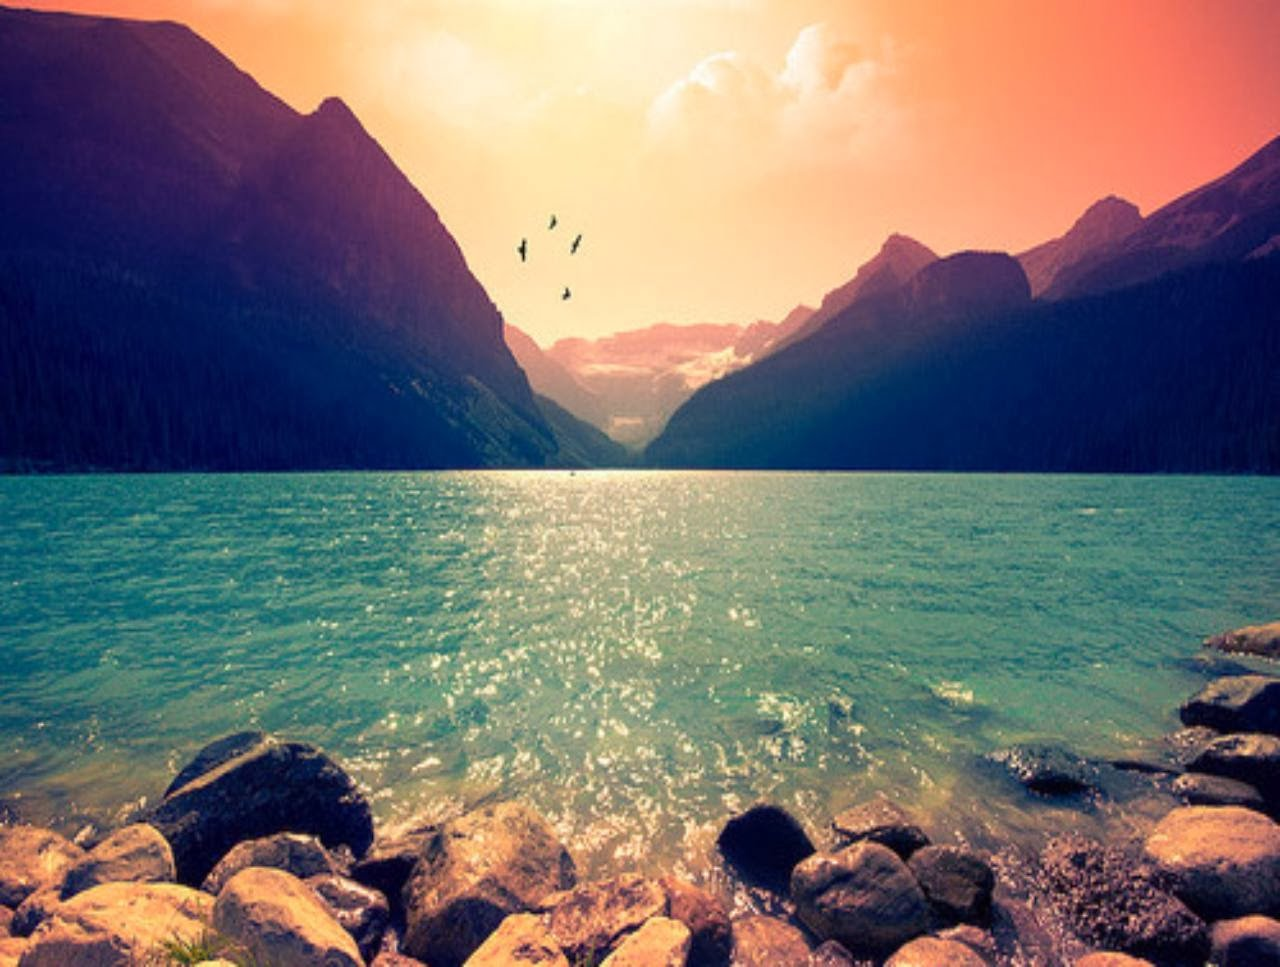 Most Beautiful Tumblr Pictures WallpaperYork Brows your wallpaper 1280x967